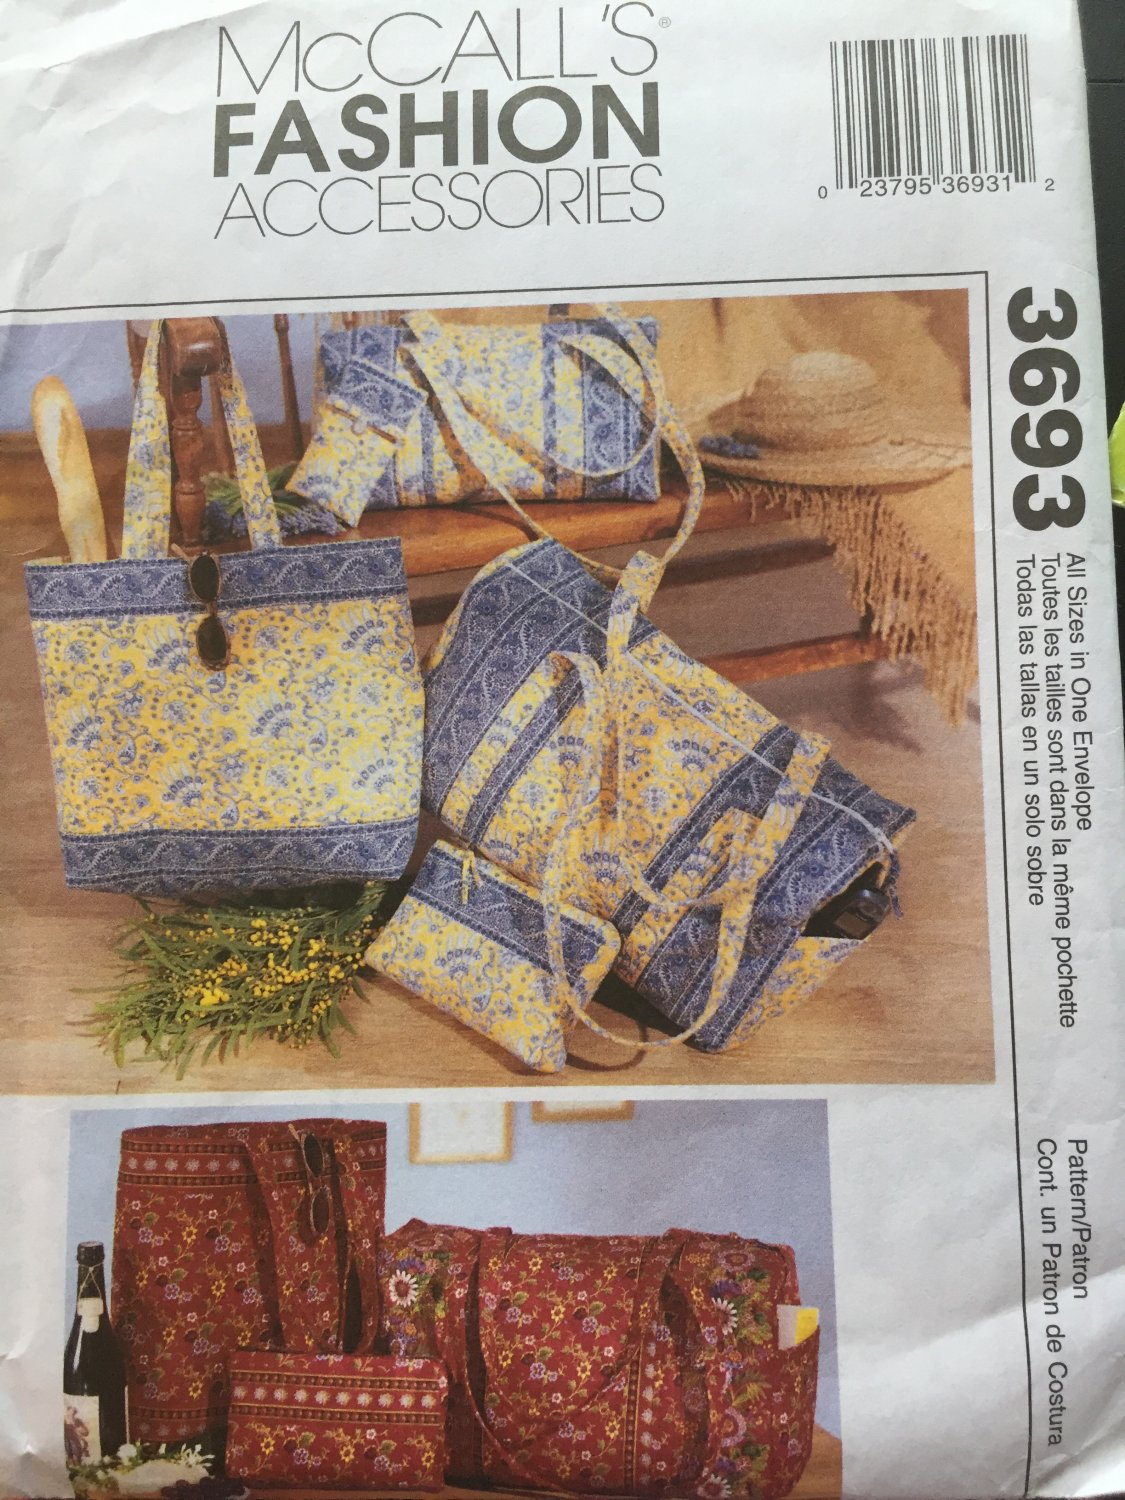 McCall's 3693 Accessories Pattern Duffel, Tote Bag Sewing Pattern